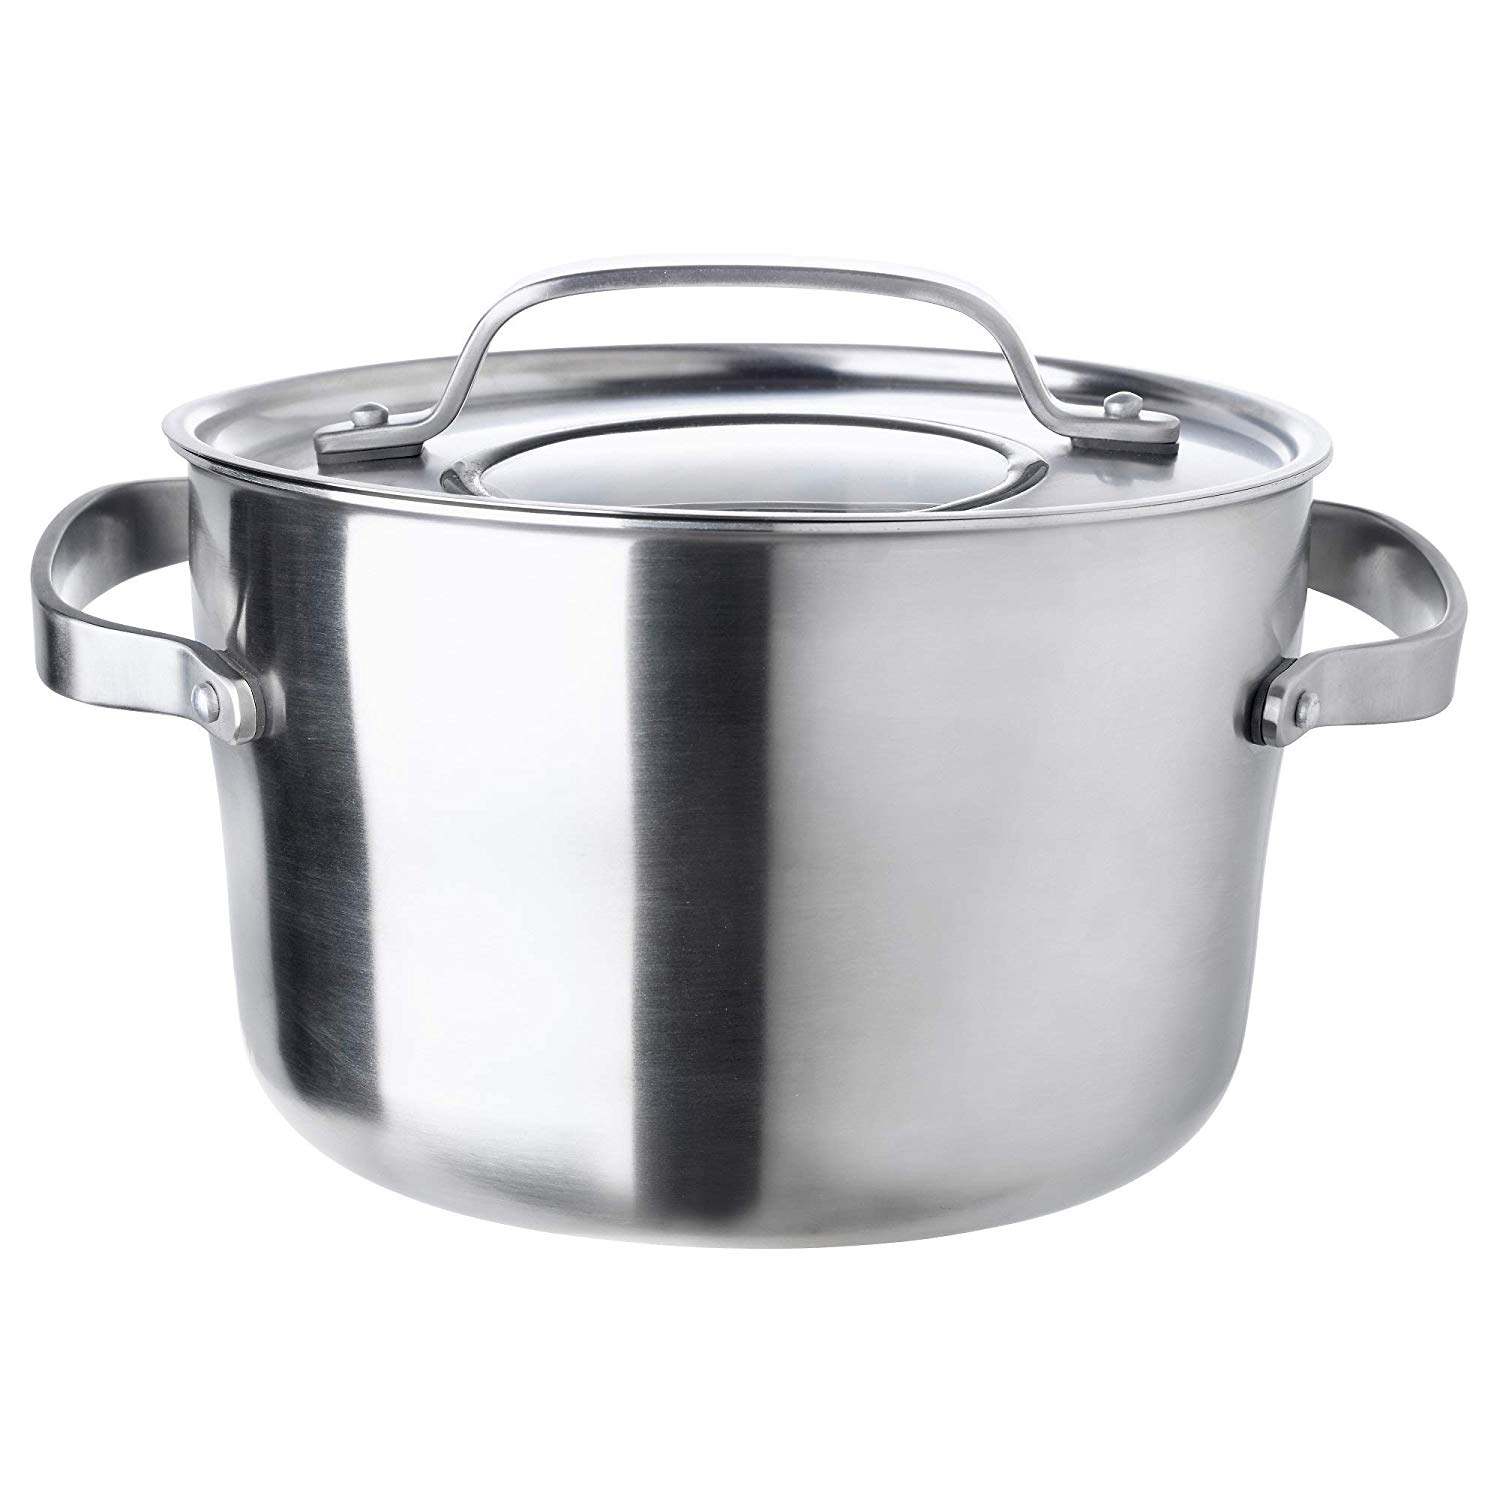 SENSUELL Pot with lid, stainless steel, grey, 5.5 l